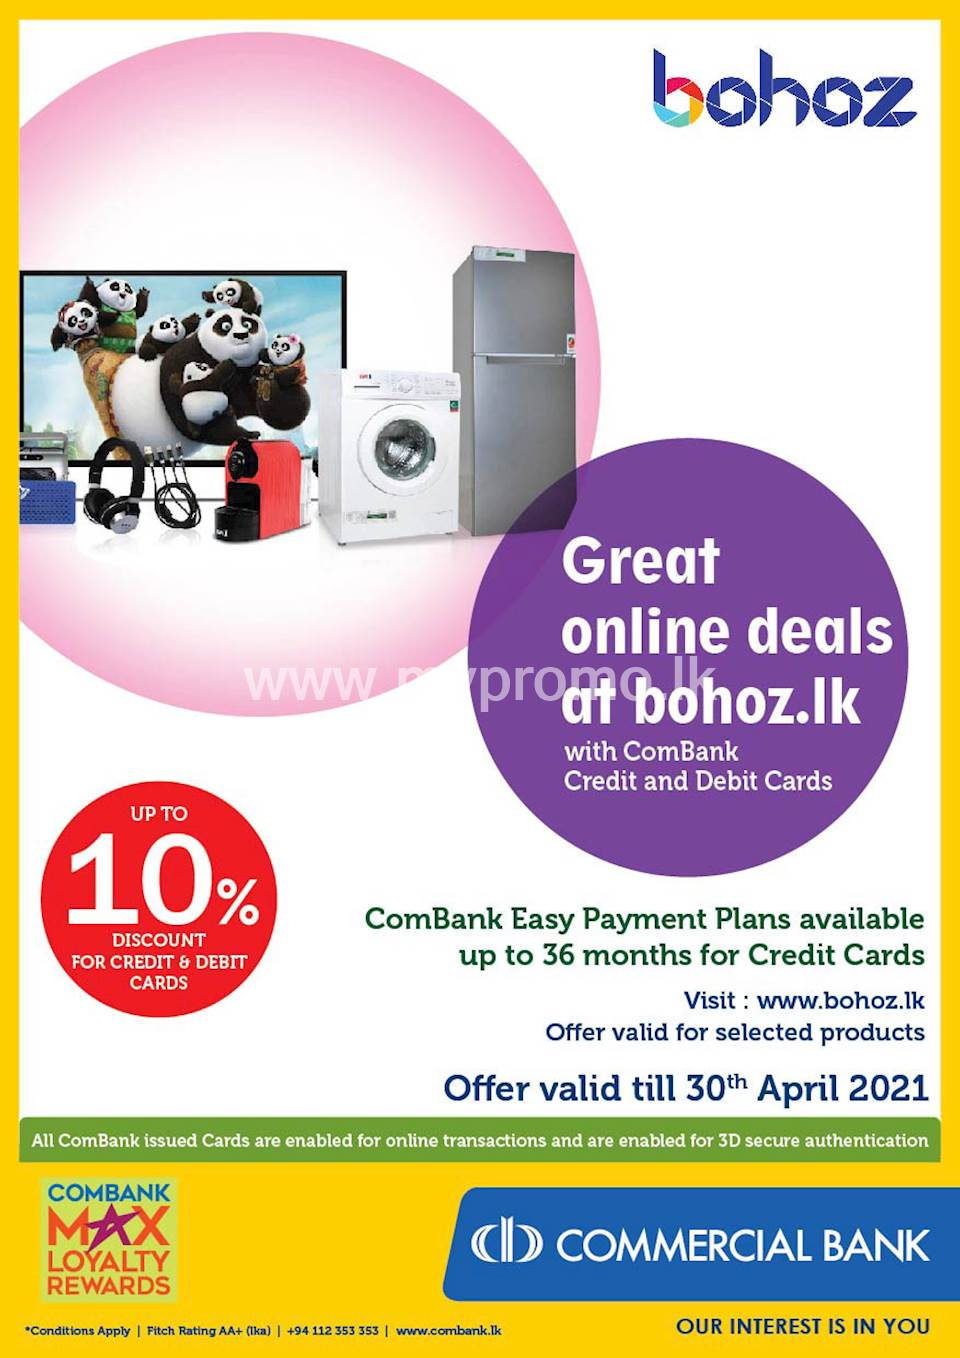 Get up to 10% Discount at bohoz.lk with ComBank Credit and Debit Cards